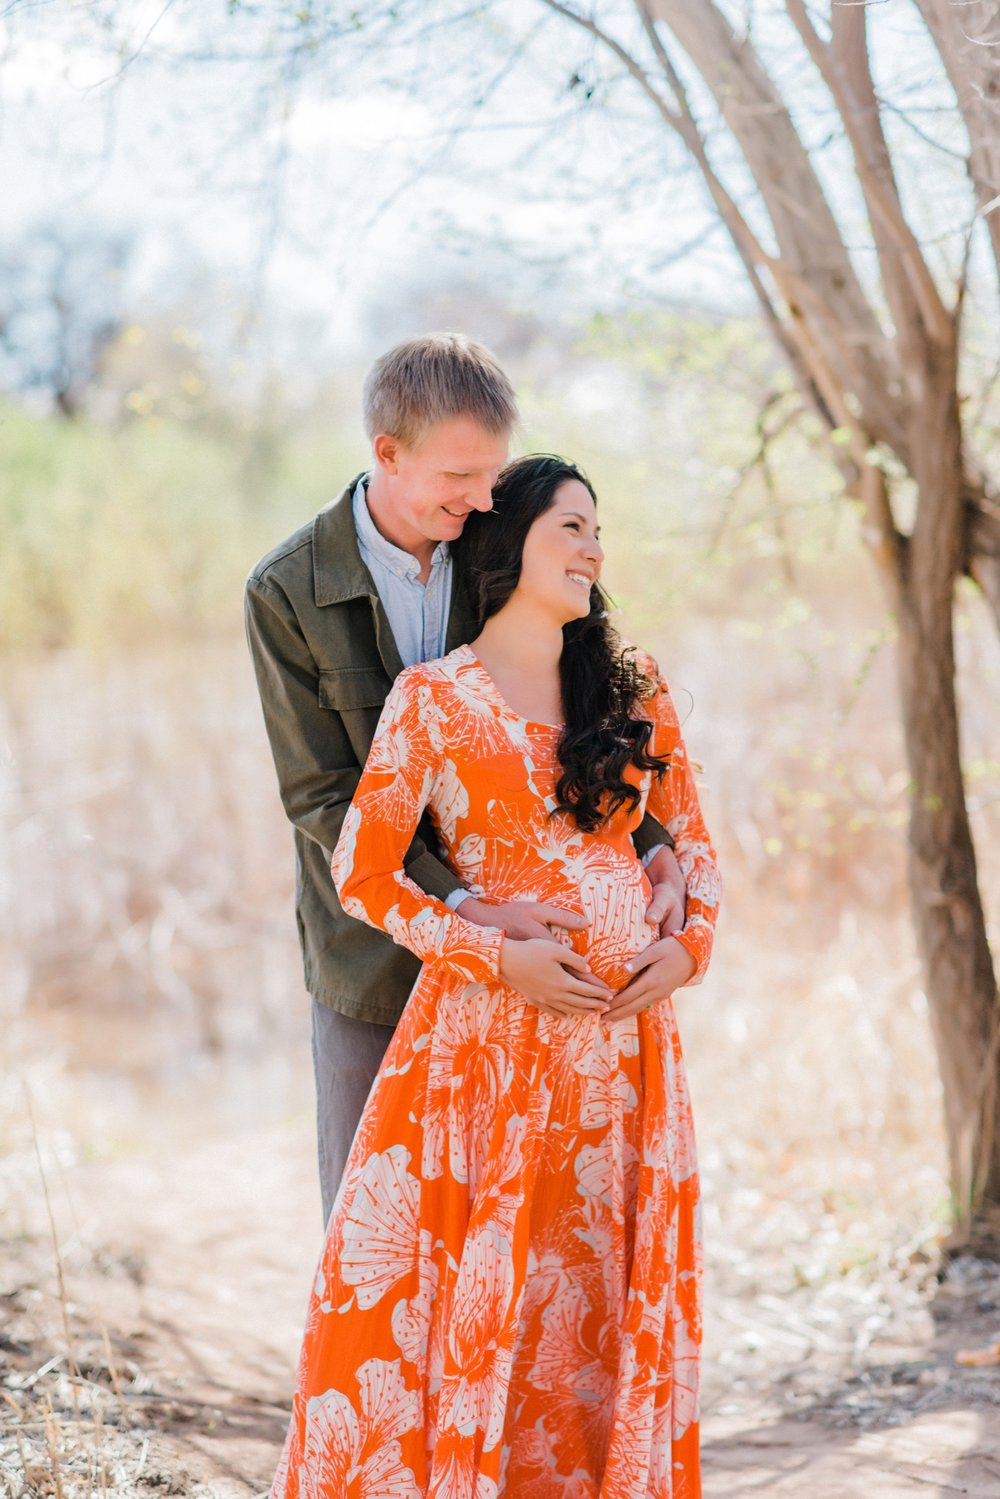 Carissa and Ben-maternity-southwest photographer-destination photographer-new mexico wedding-1001.1.jpg